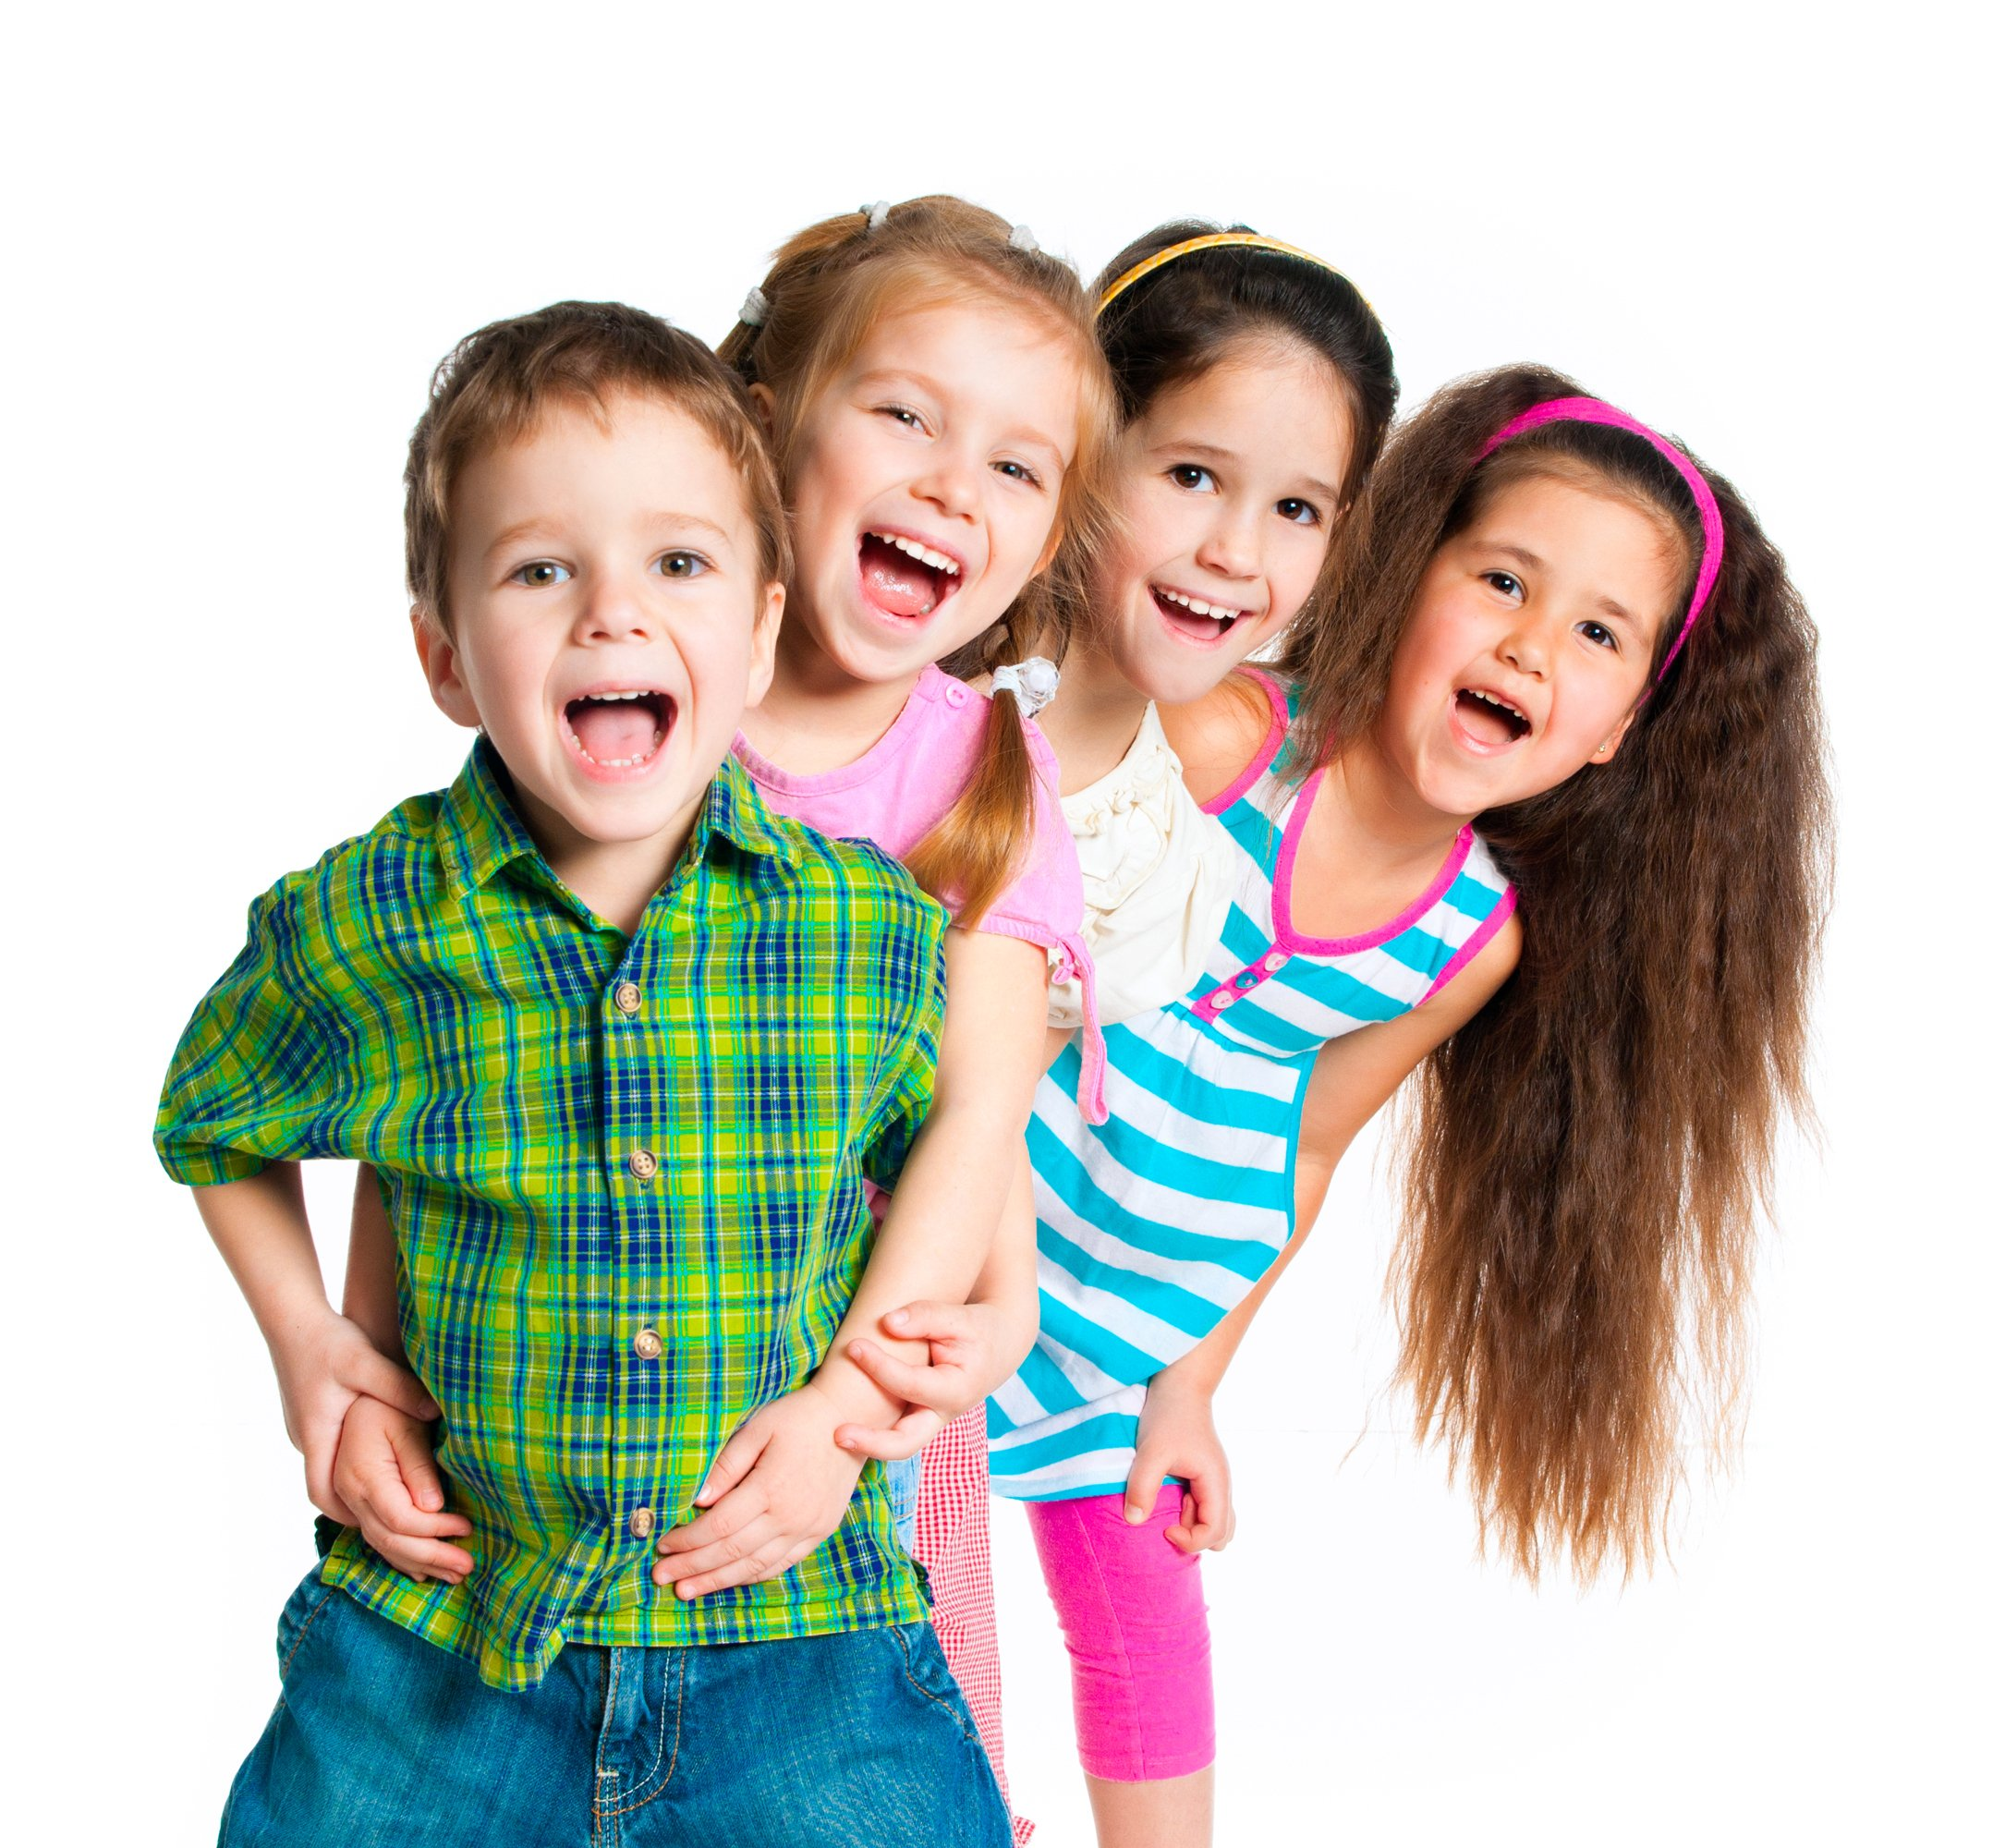 Odenton's #1 Summer Camp for Kids